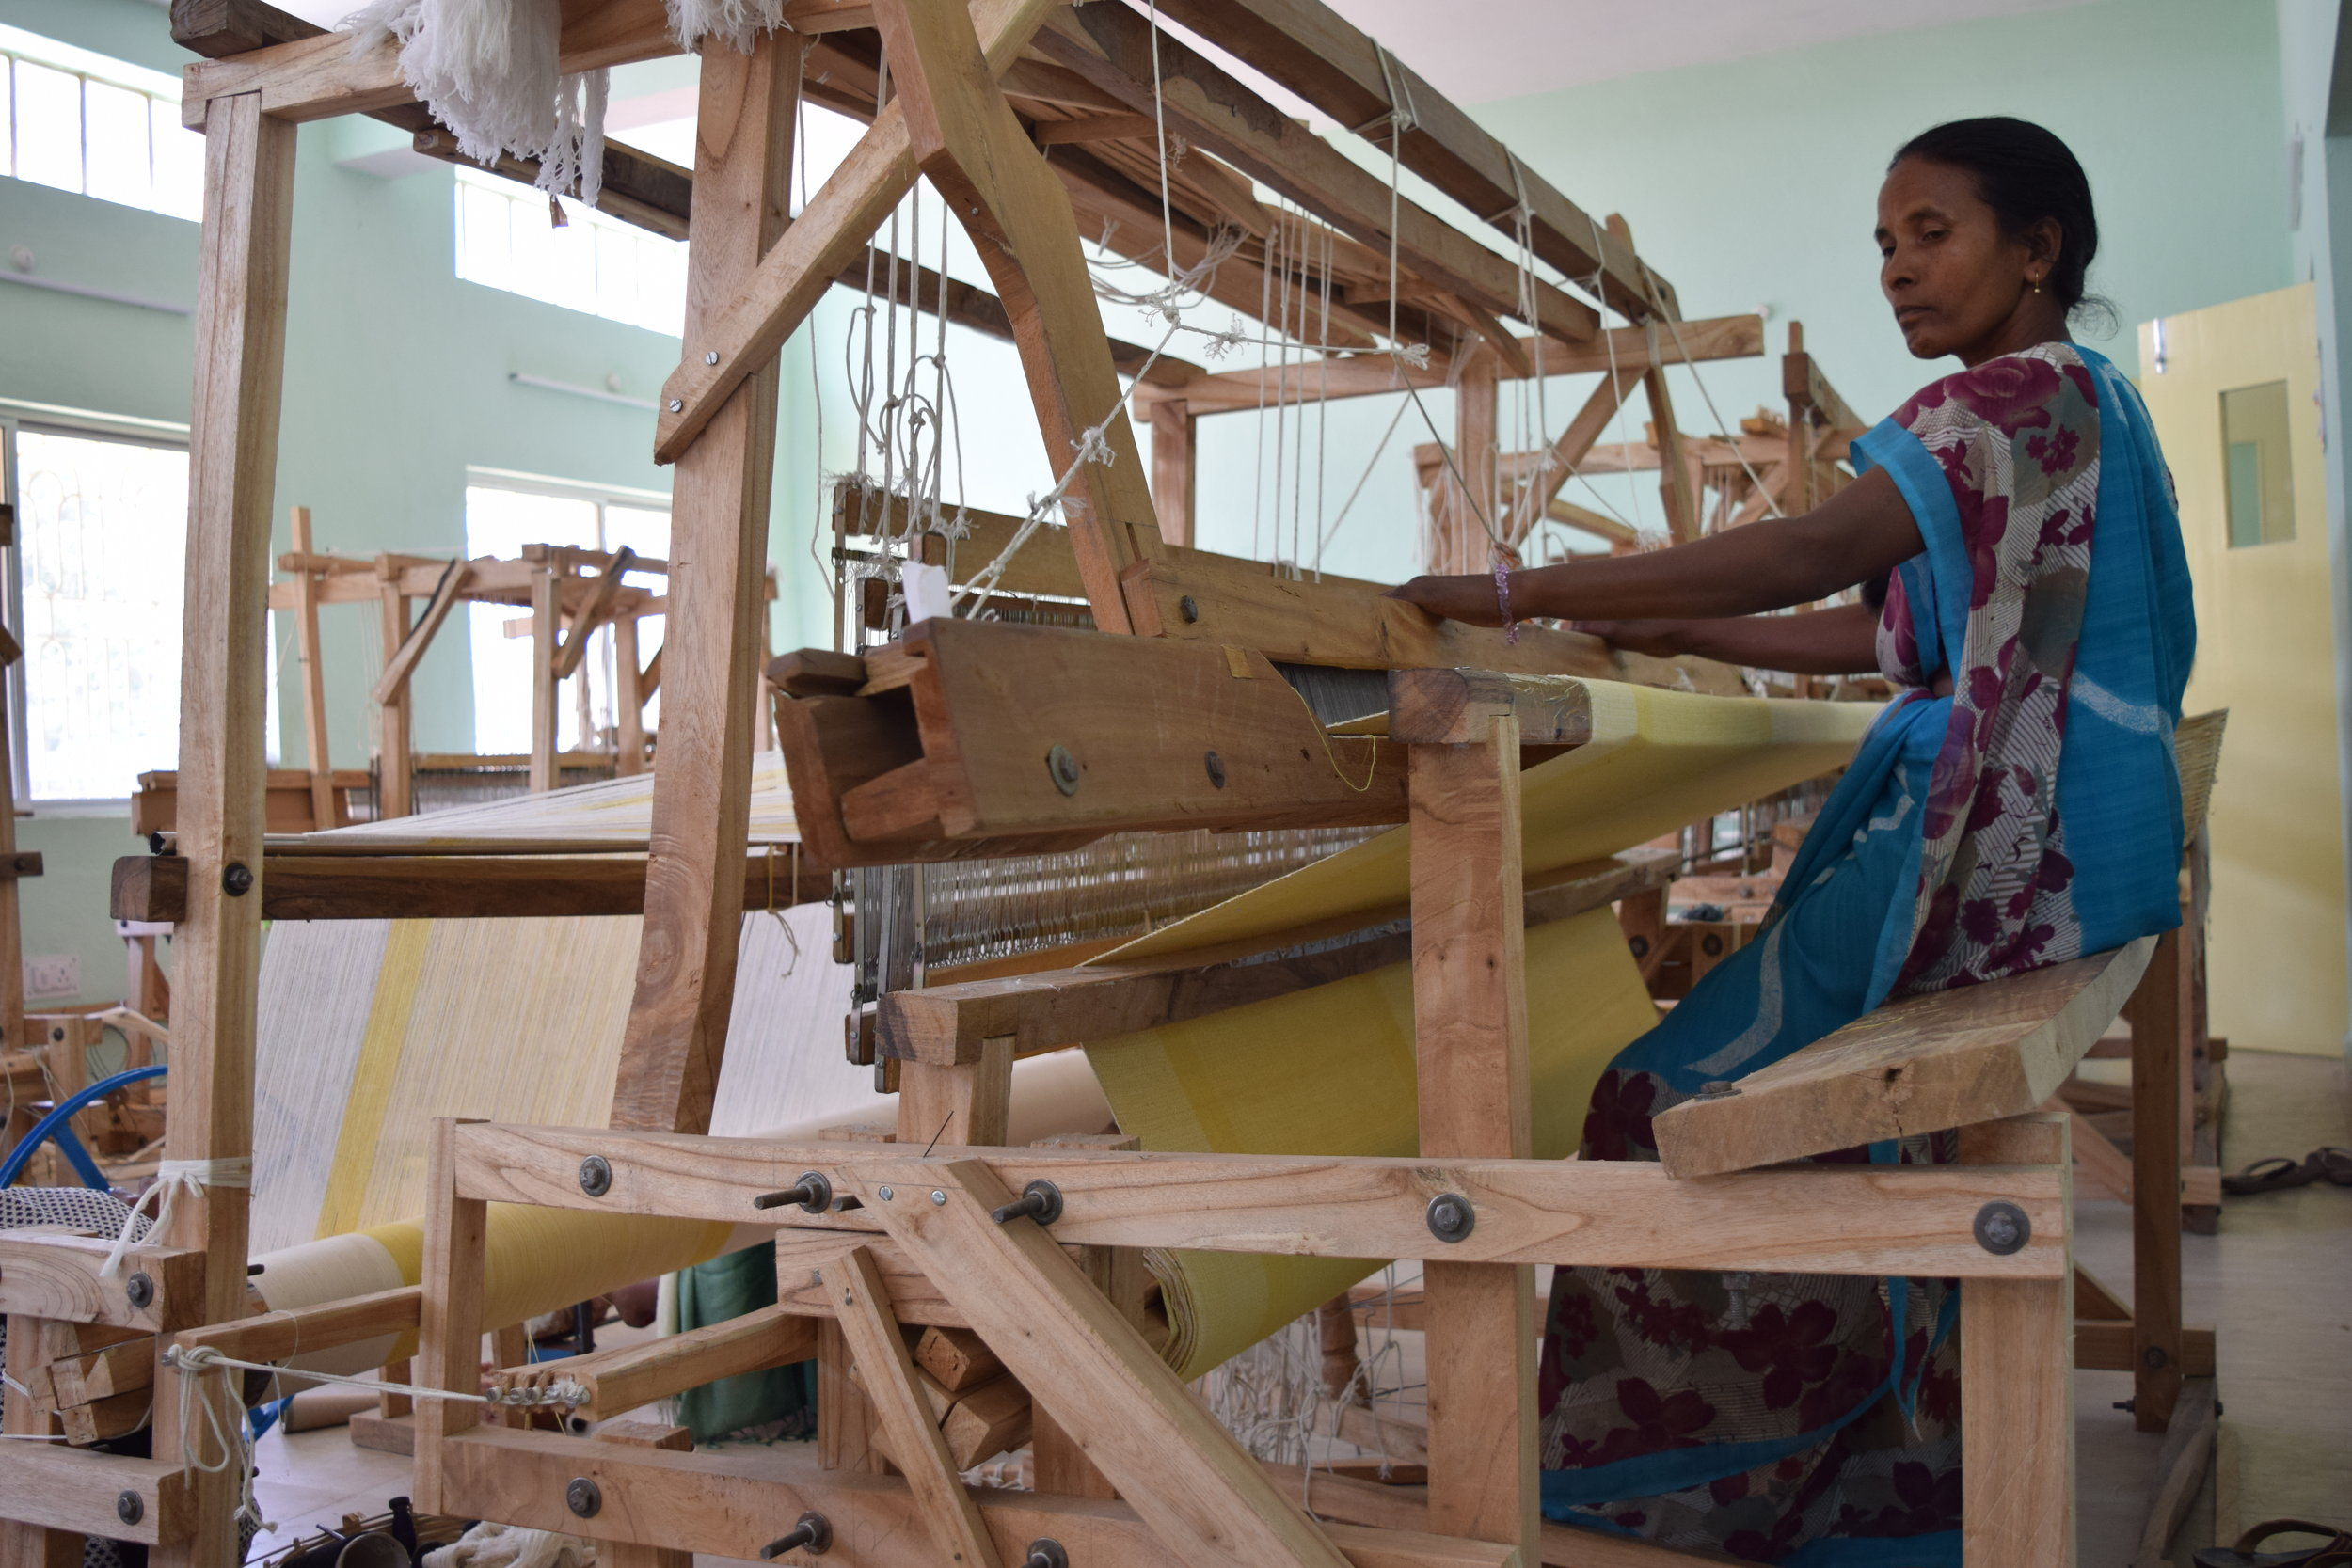 Solid_Crafts_India_Paces_Handloom (2).JPG